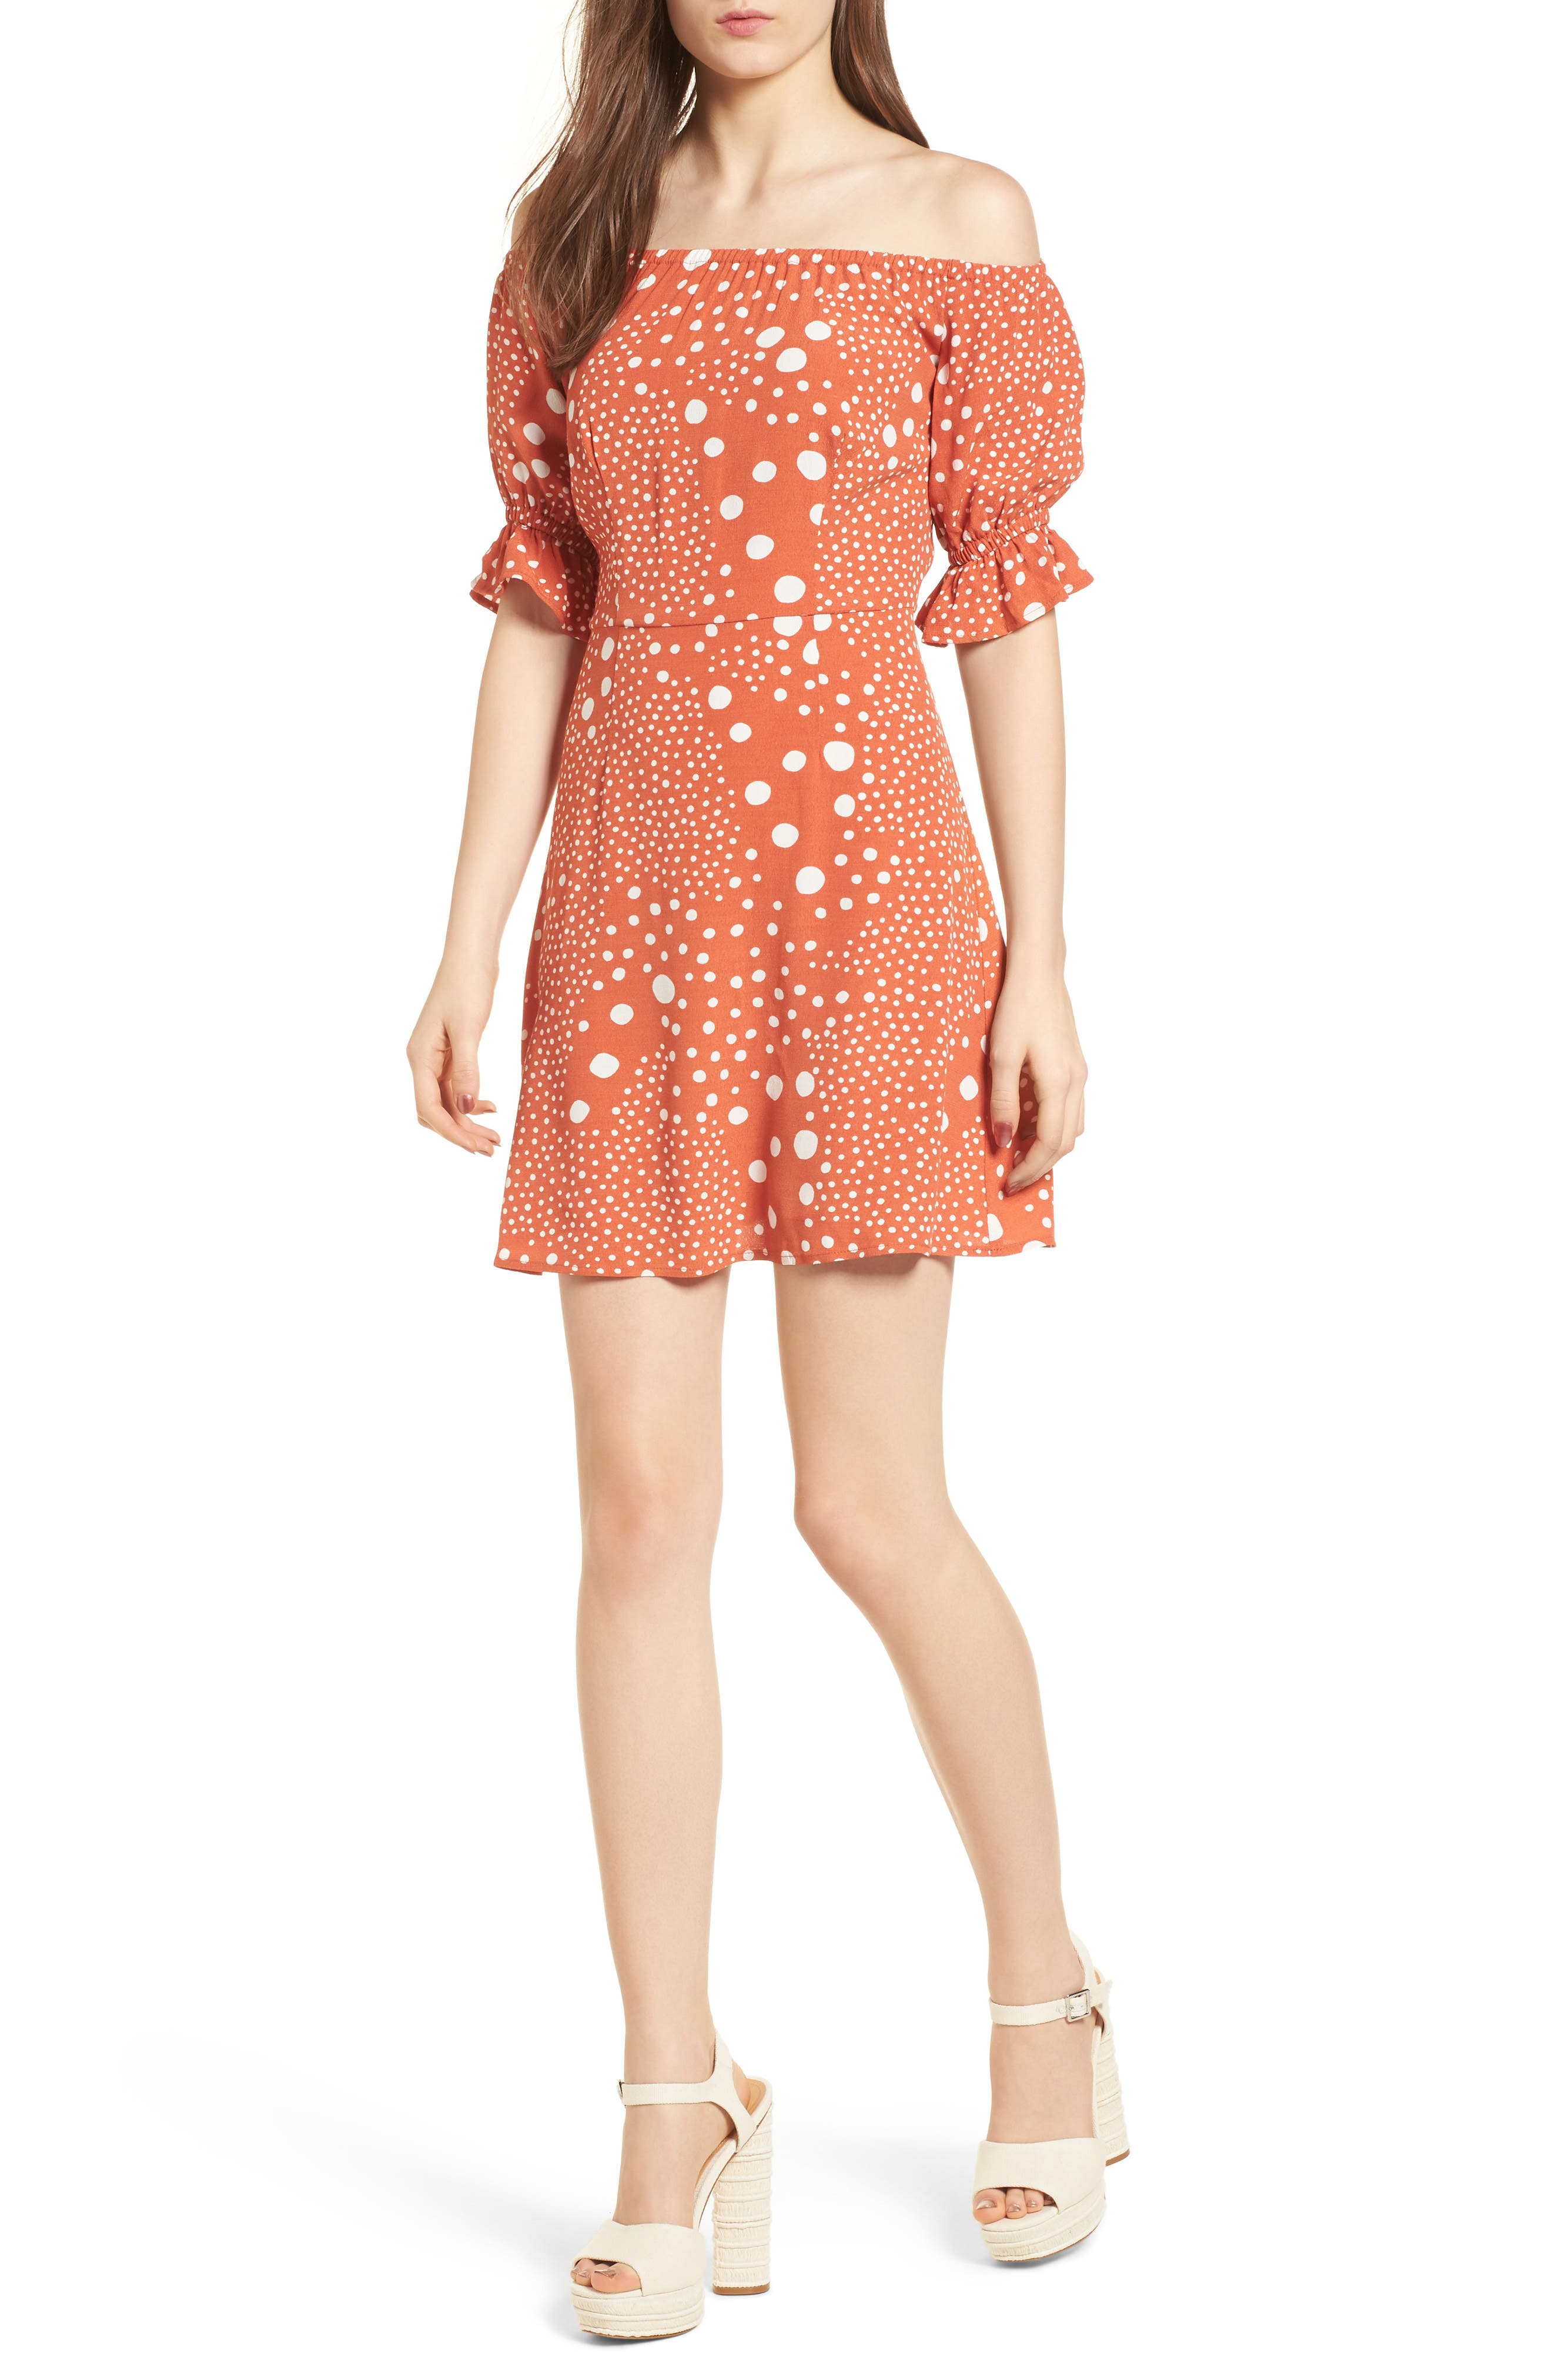 Peppers Polka Dot Off the Shoulder Dress,                             Main thumbnail 1, color,                             RUST PEBBLE